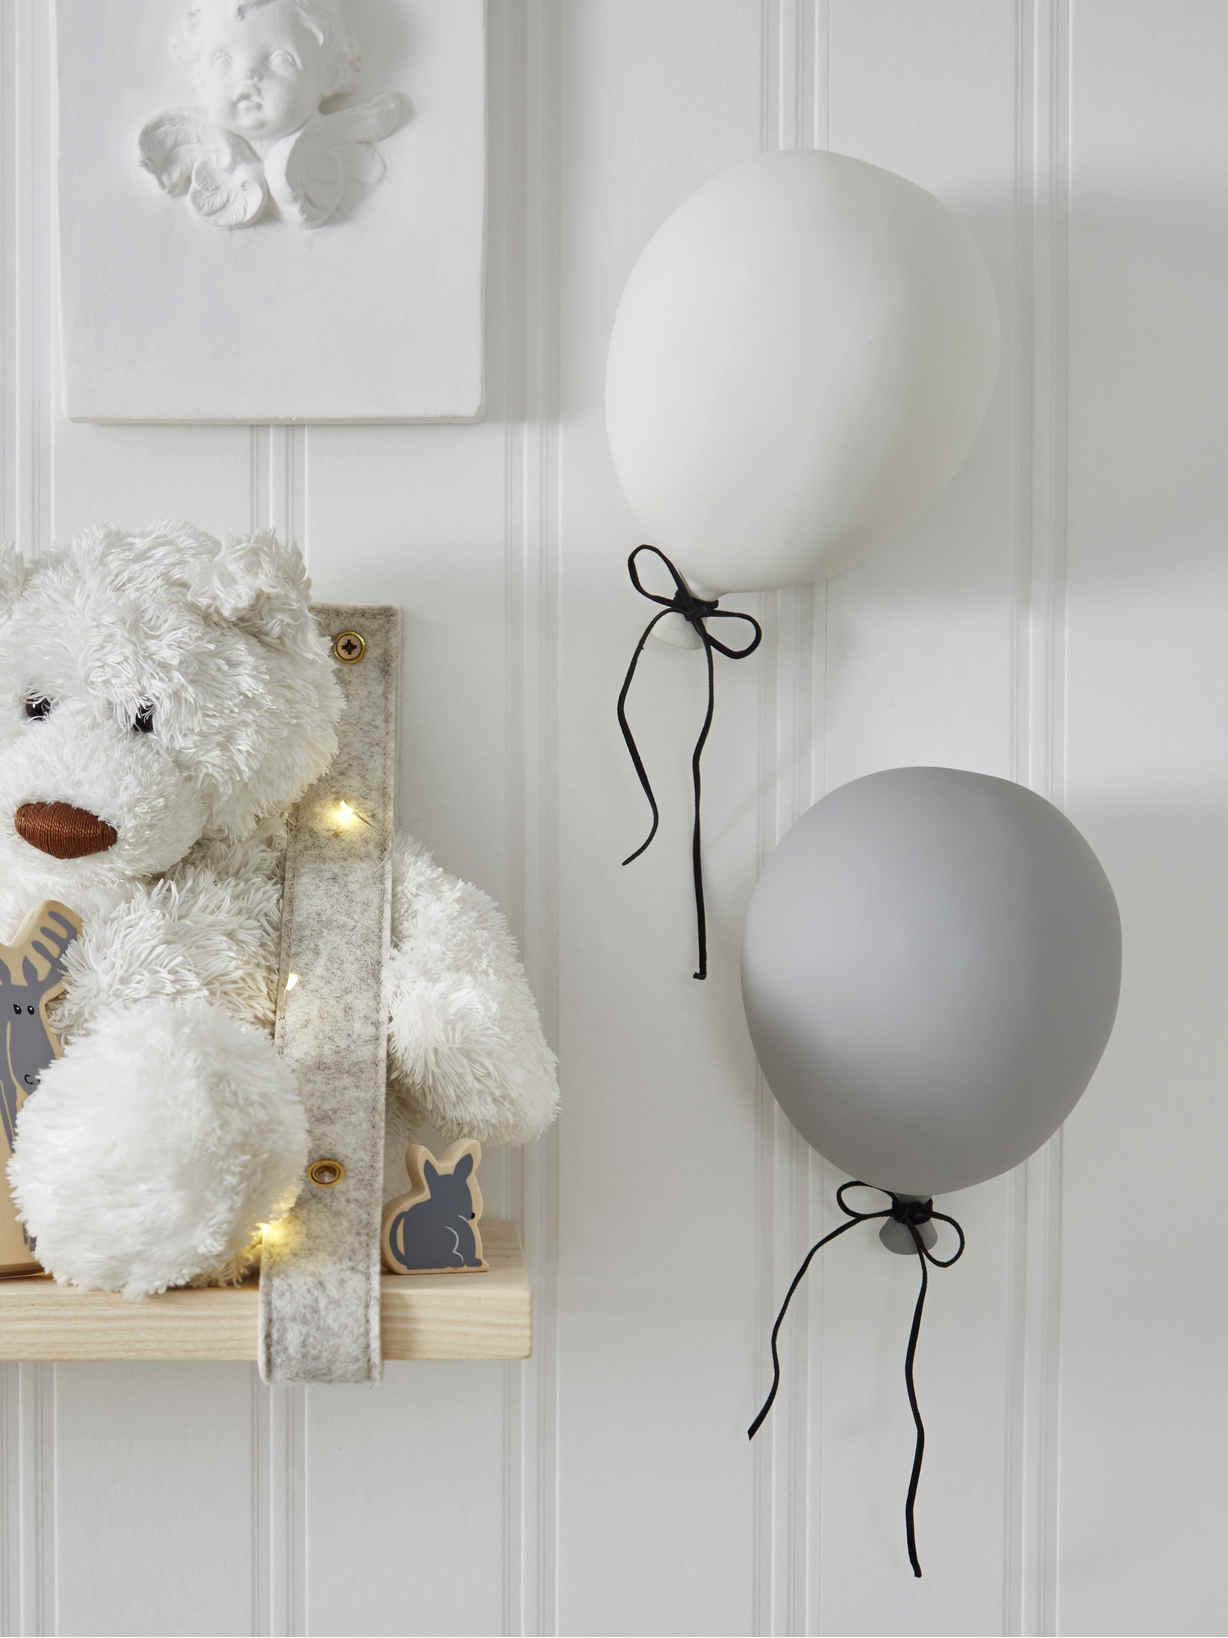 Nordic House Decorative Wall Balloons